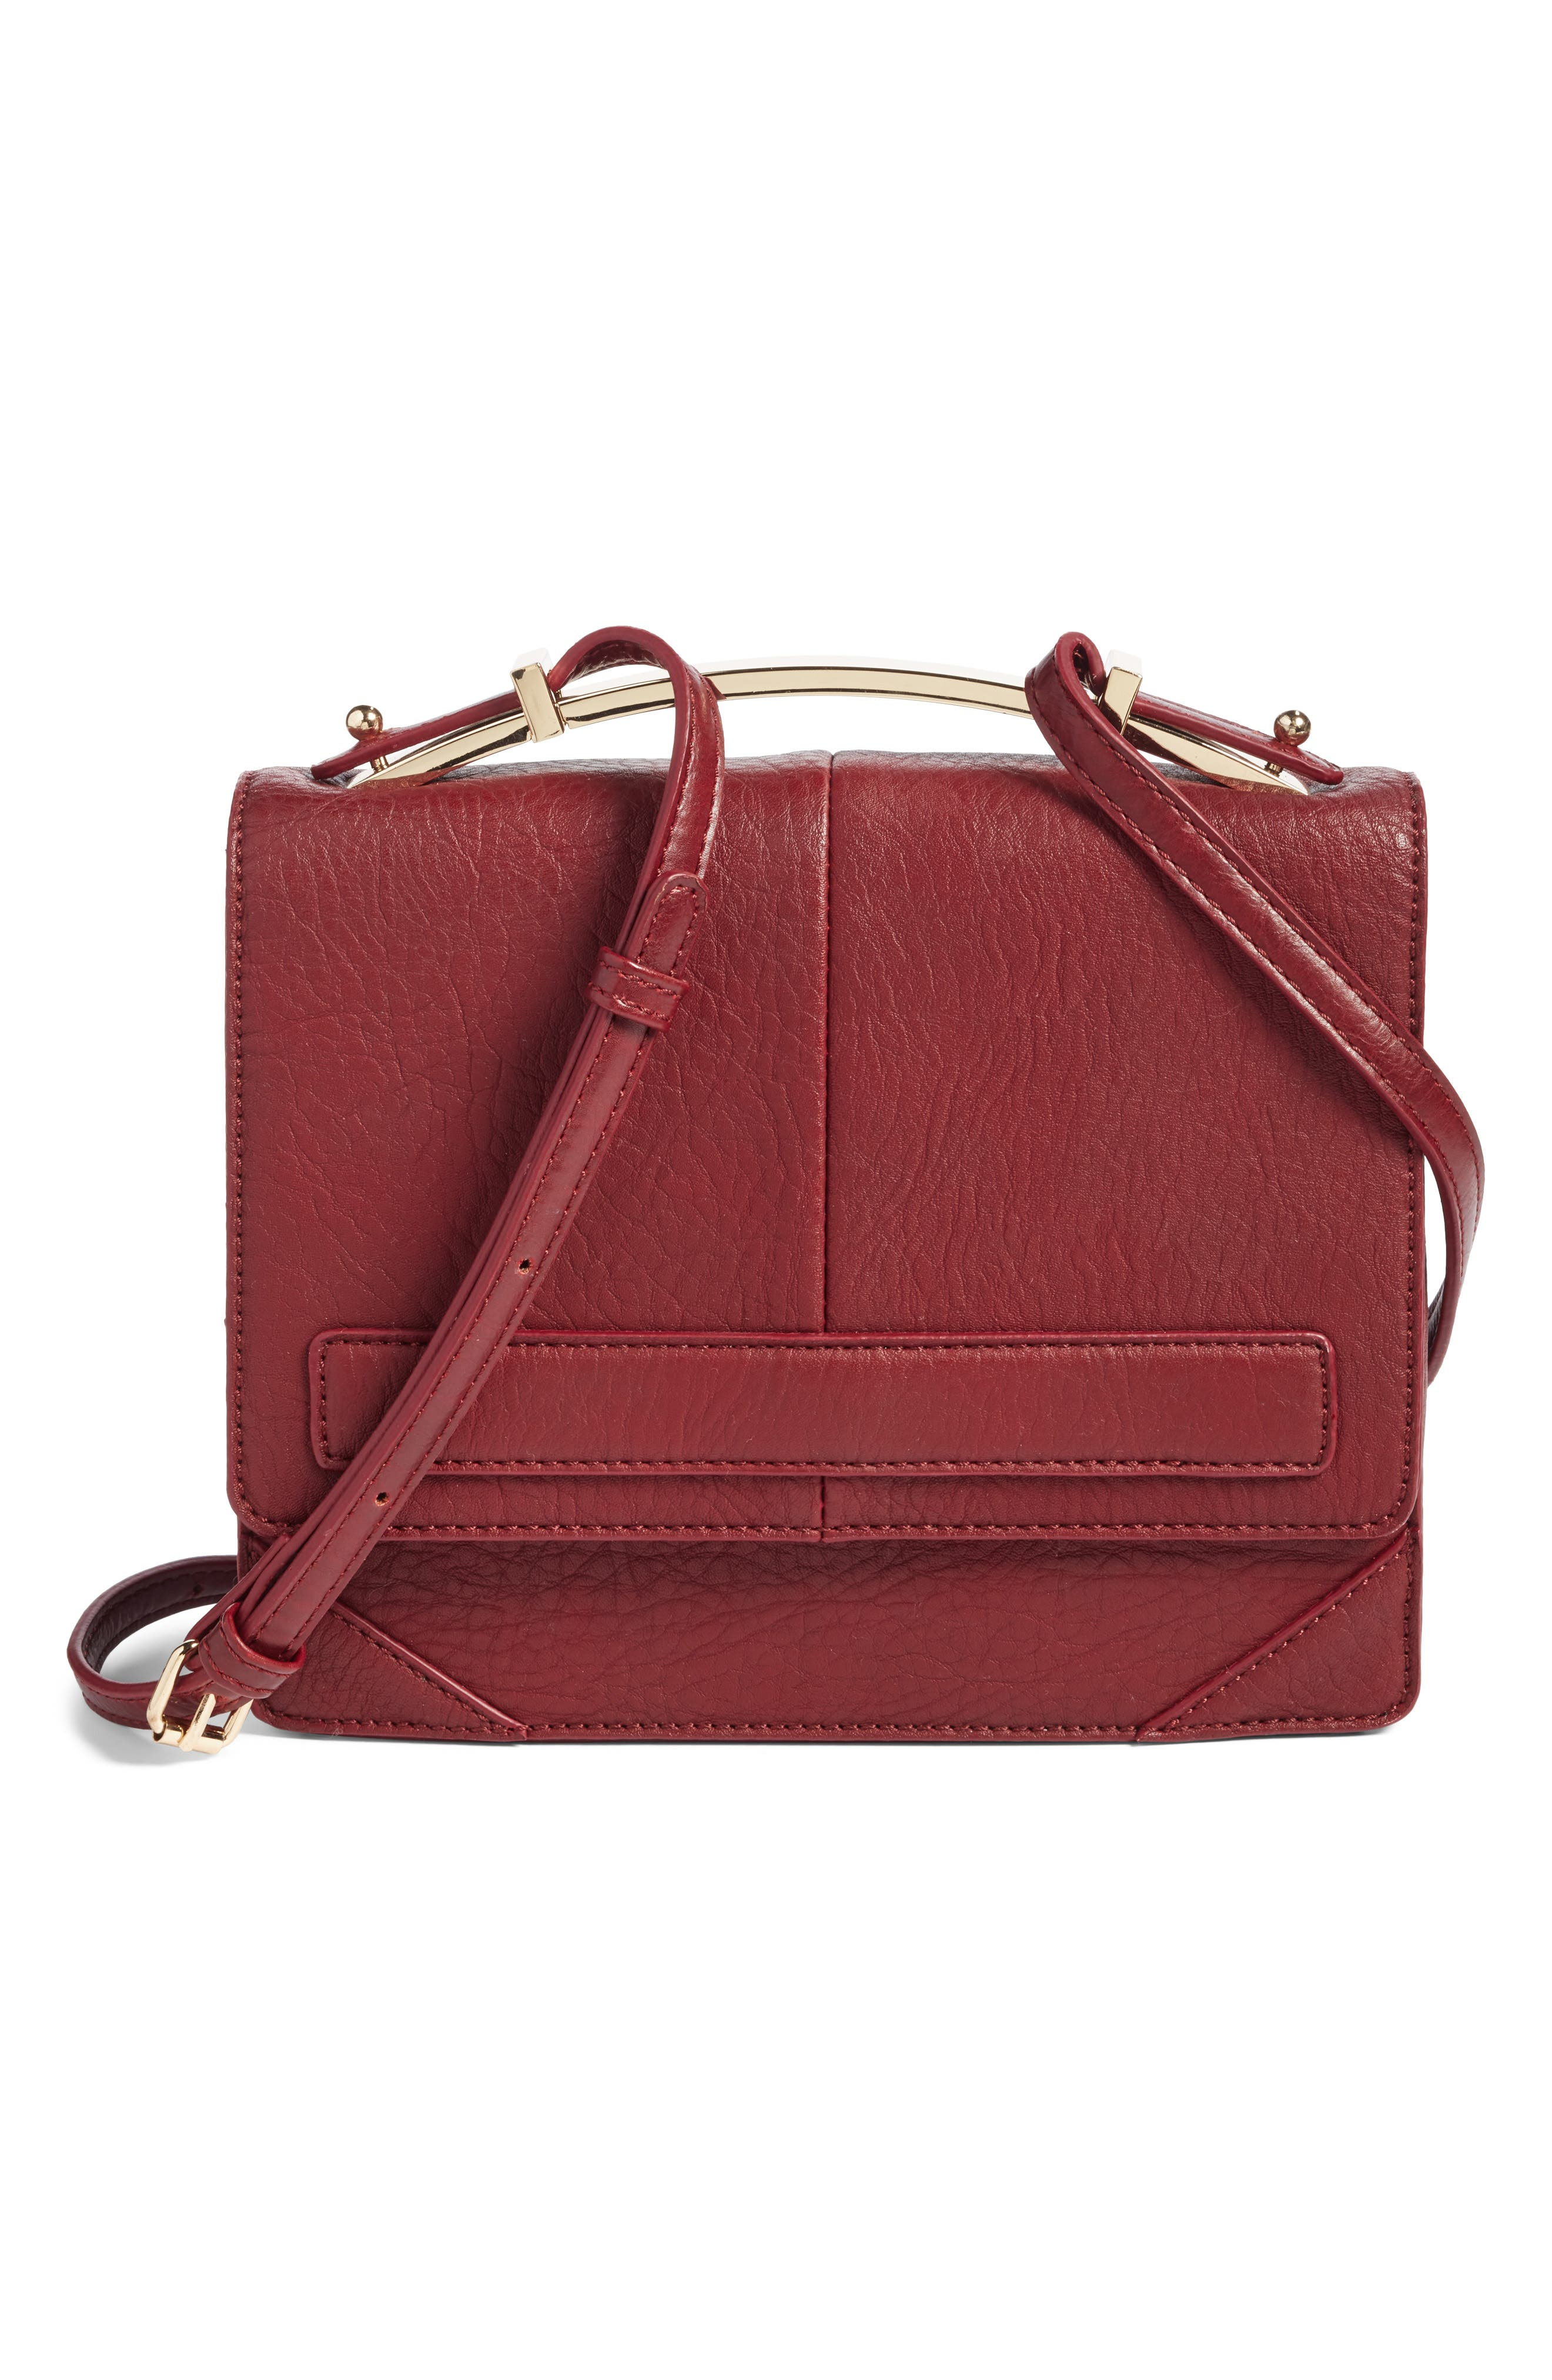 Main Image - Sole Society Krista Faux Leather Crossbody Bag